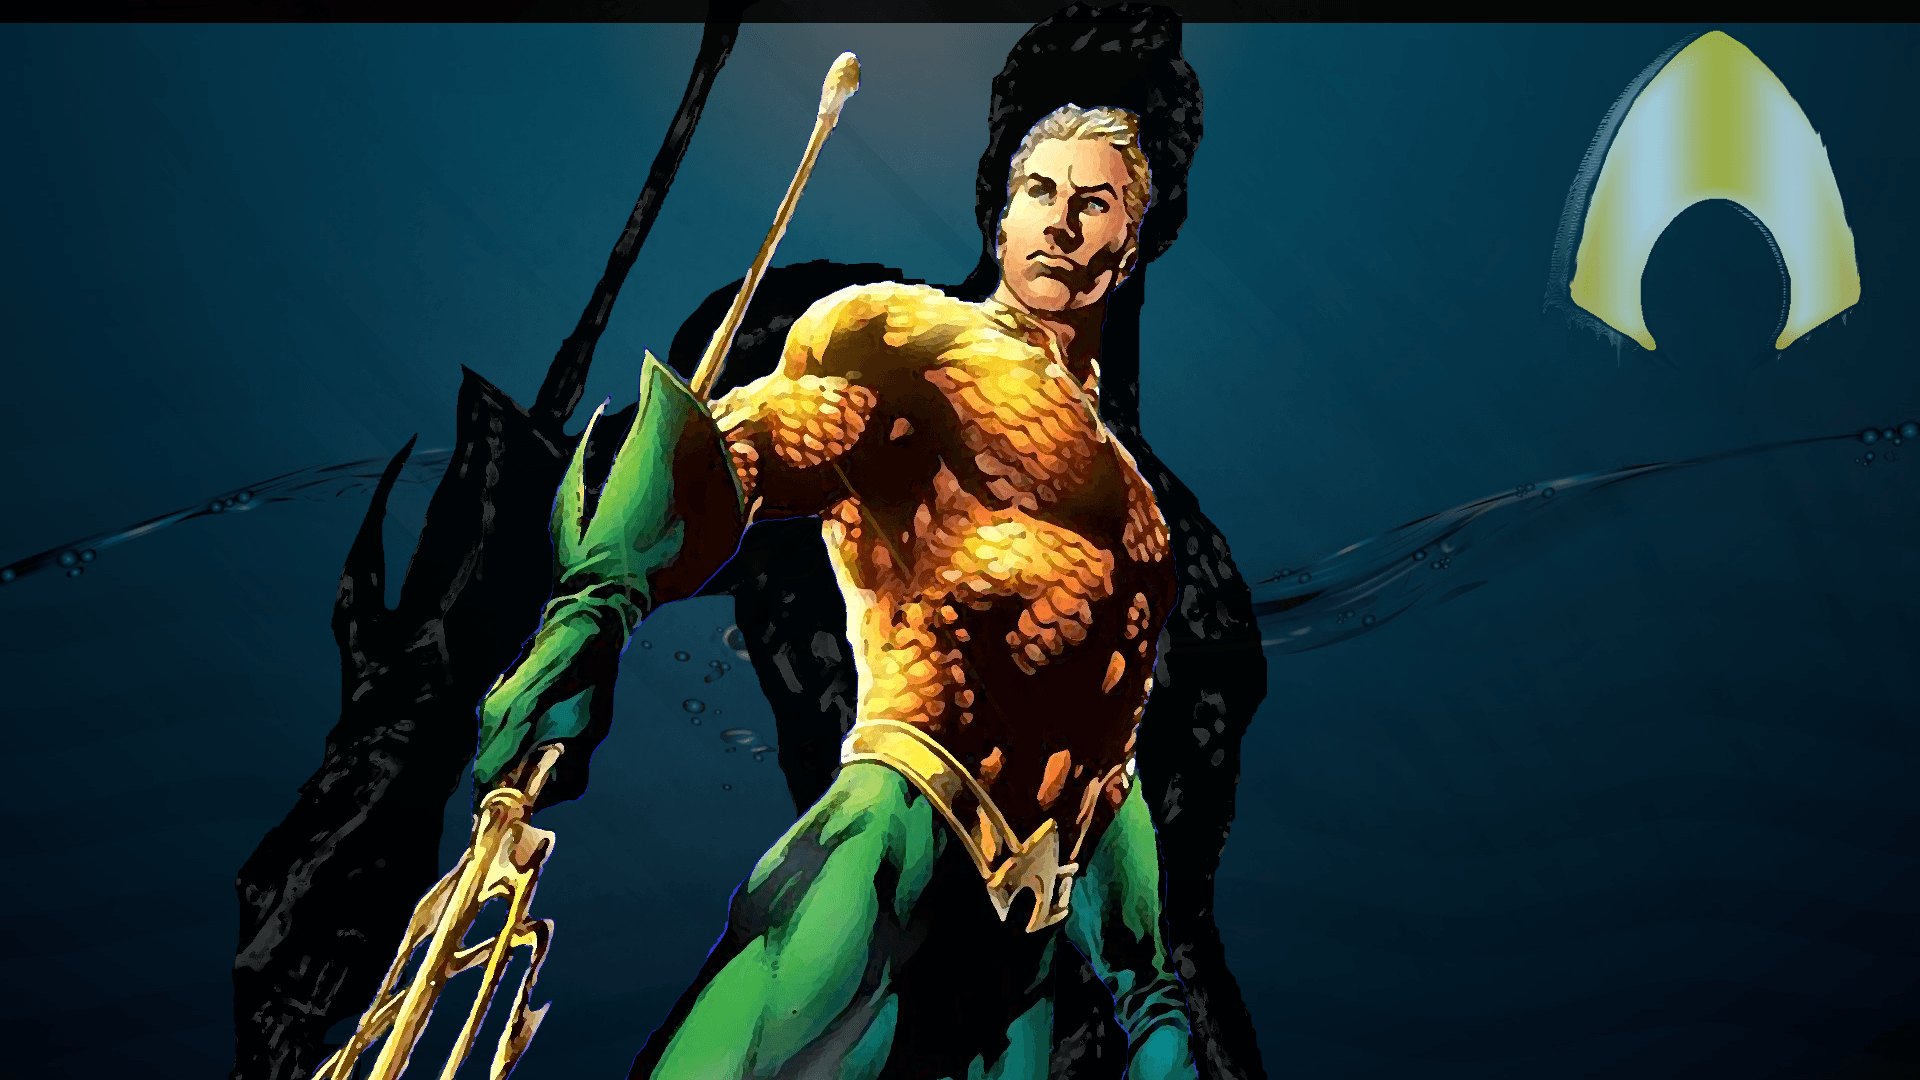 Aquaman Wallpapers, HD Quality Desktop Pictures